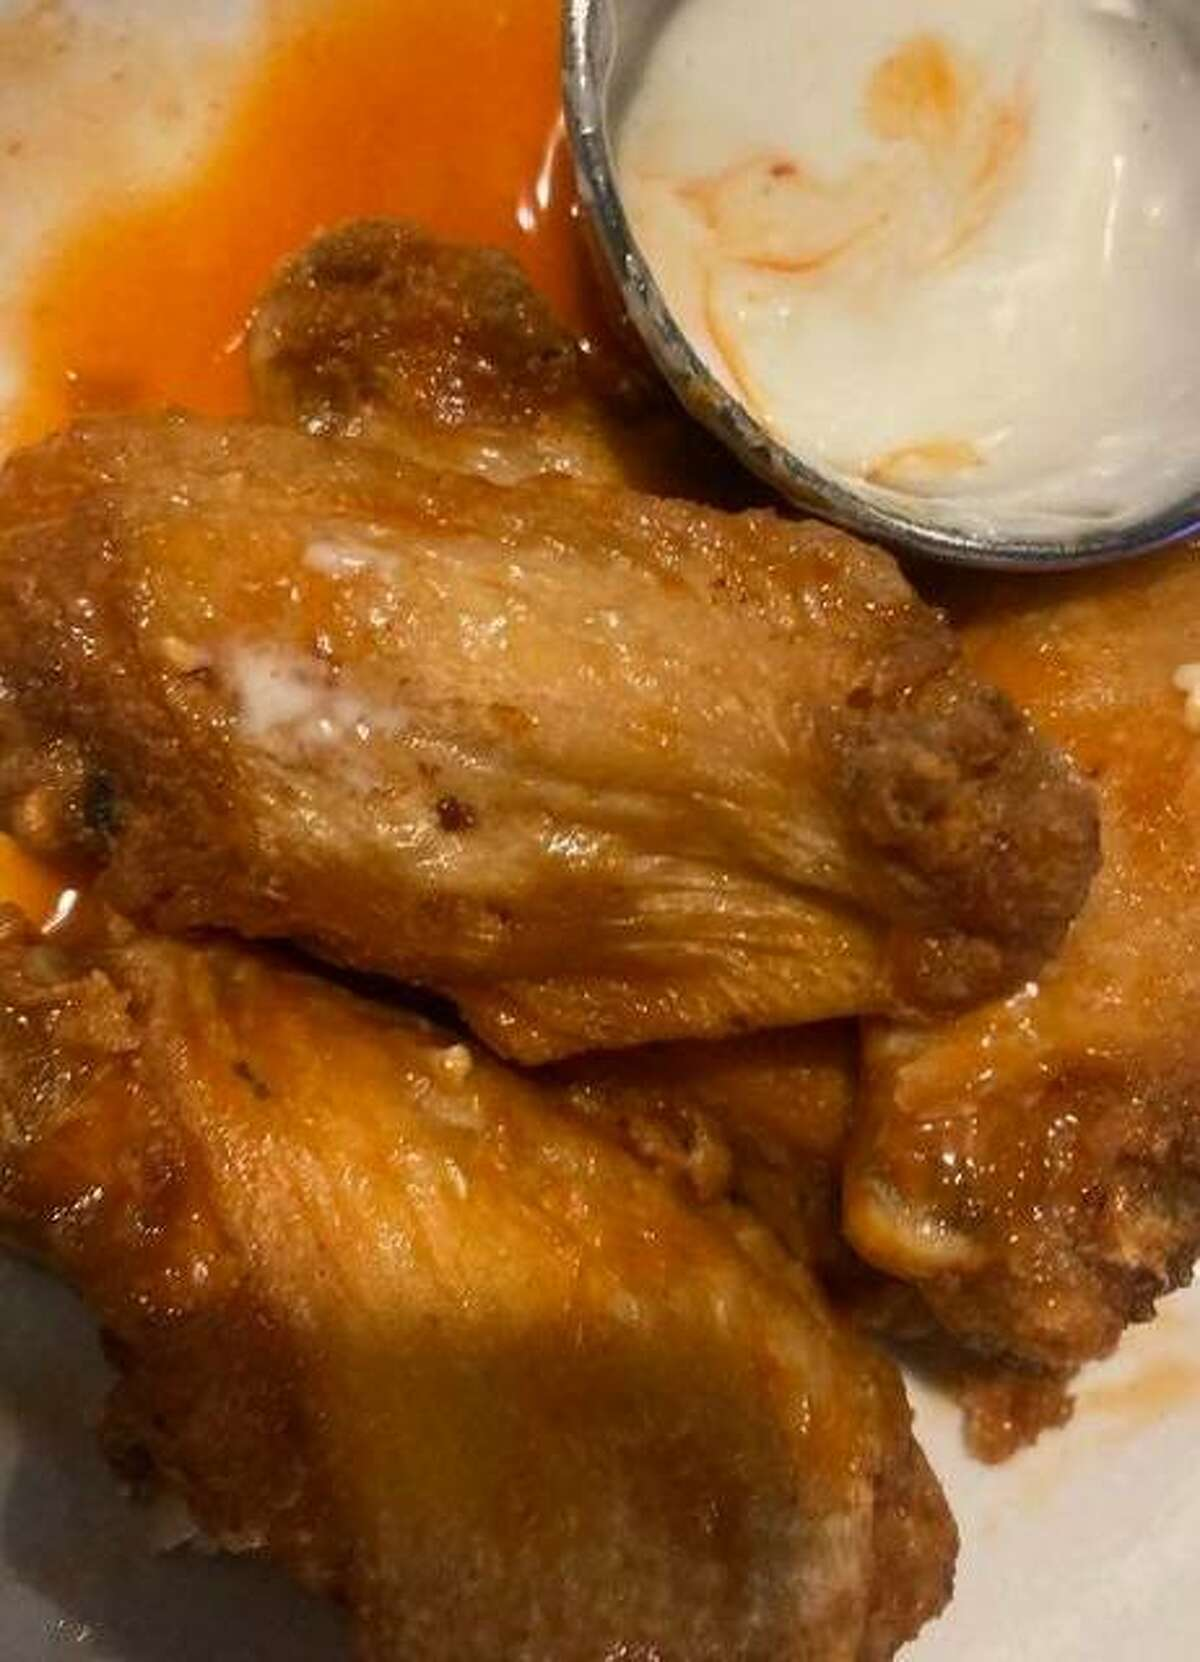 Bluff City Wings can be ordered with traditional buffalo sauce - with a kick but not so hot you break a sweat and your eyes water.